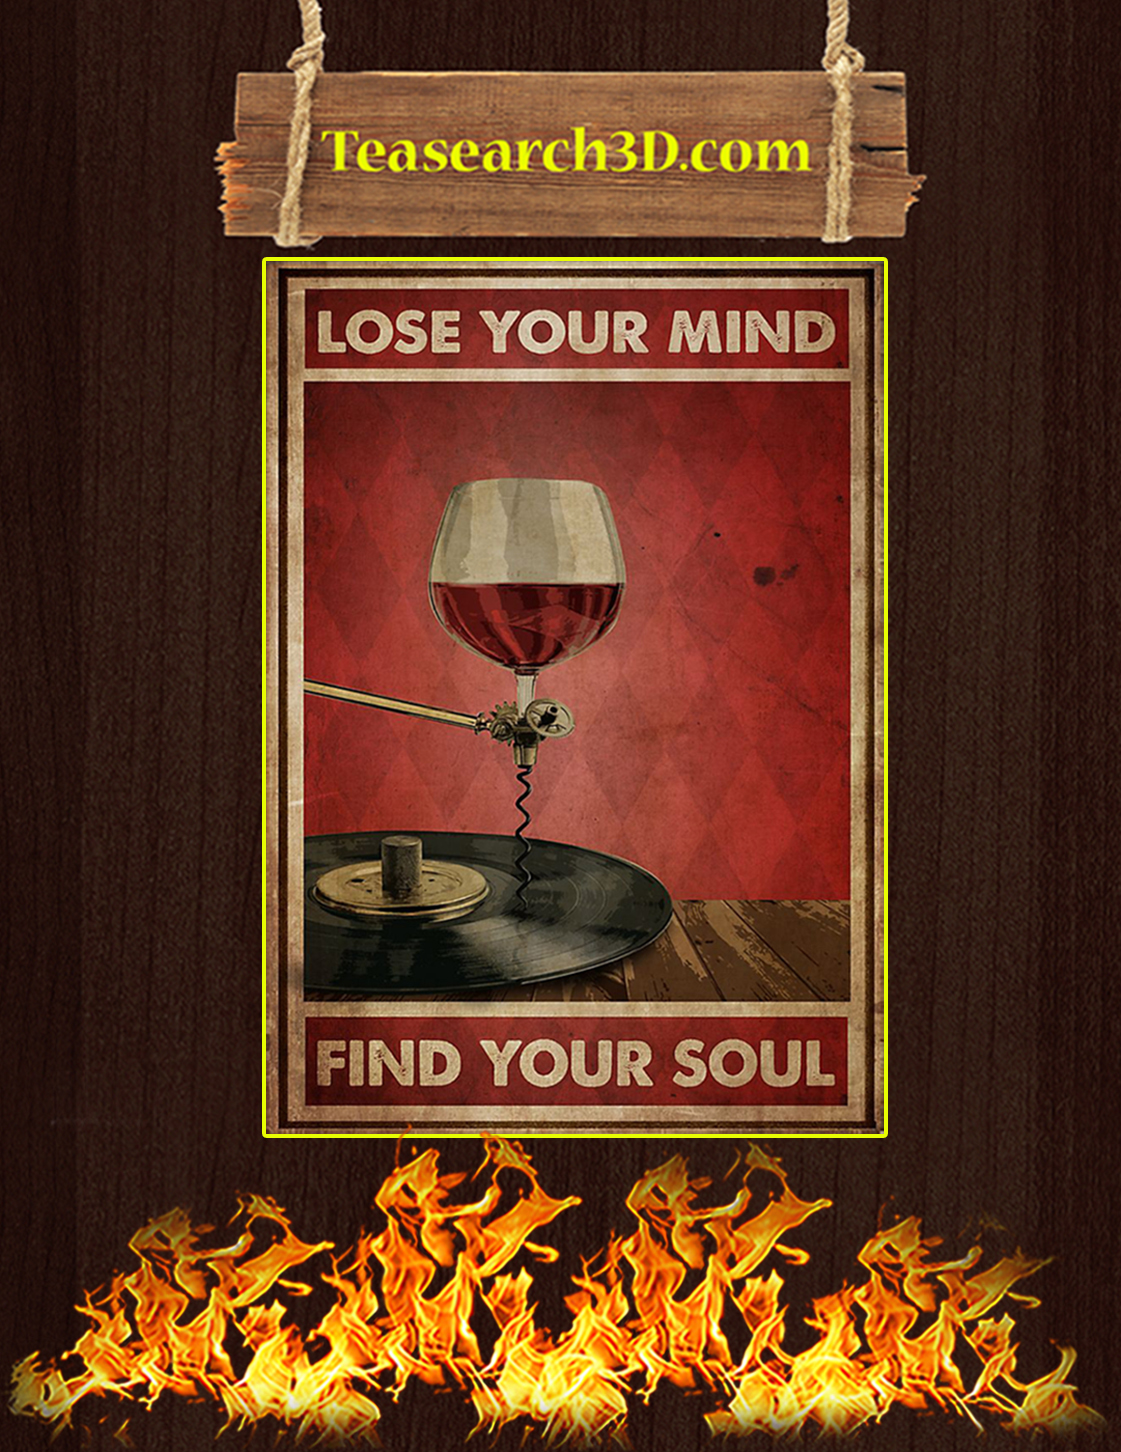 WINE AND VINYL LOSE YOUR MIND FIND YOUR SOUL POSTER A3